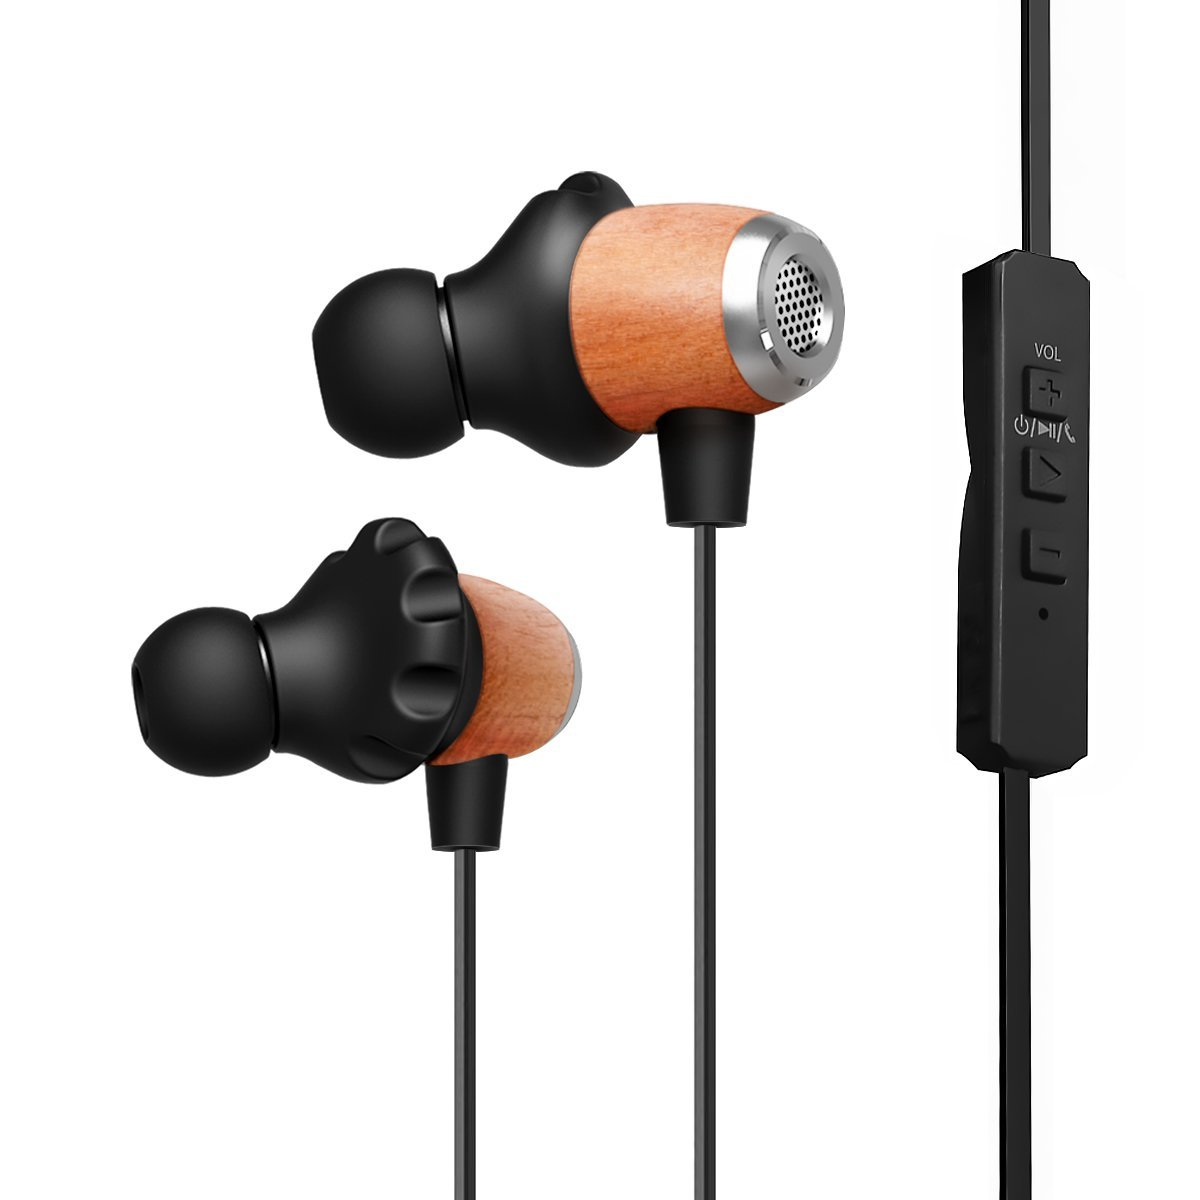 Earbuds with good sound quality - best earbuds with bass